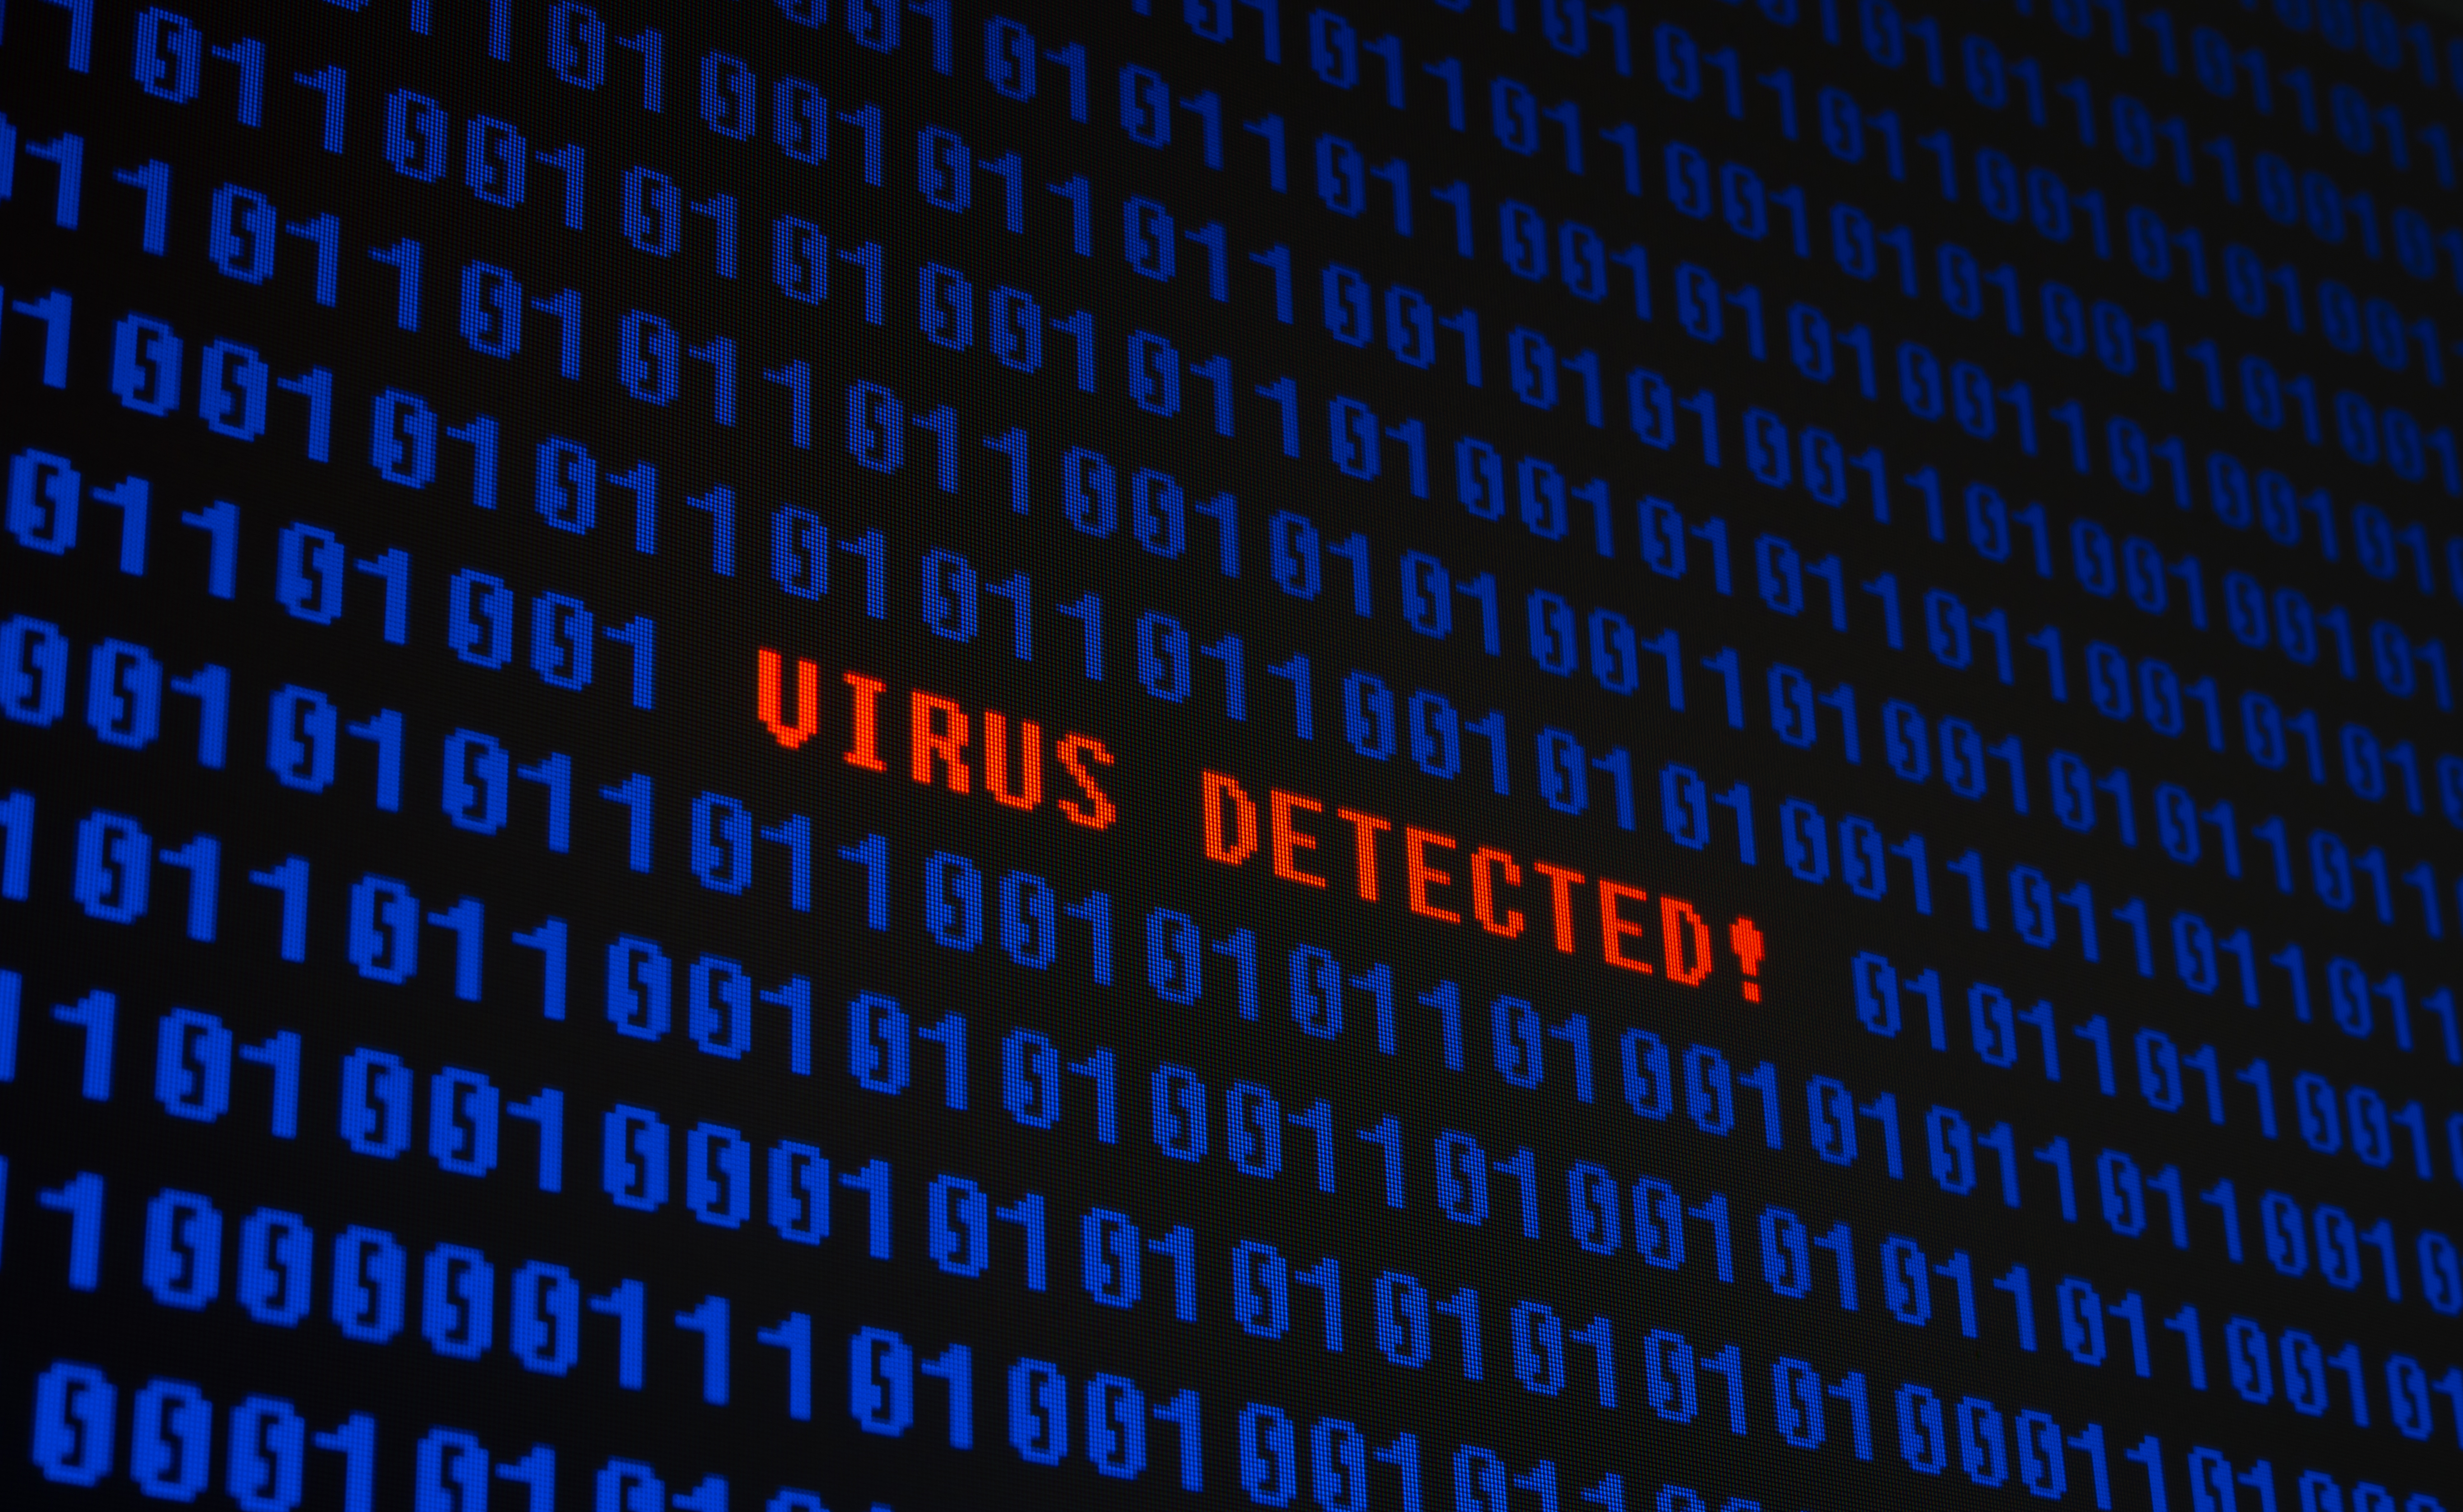 virus detected, computer viruses, cyber attacks, cyber security, IT security